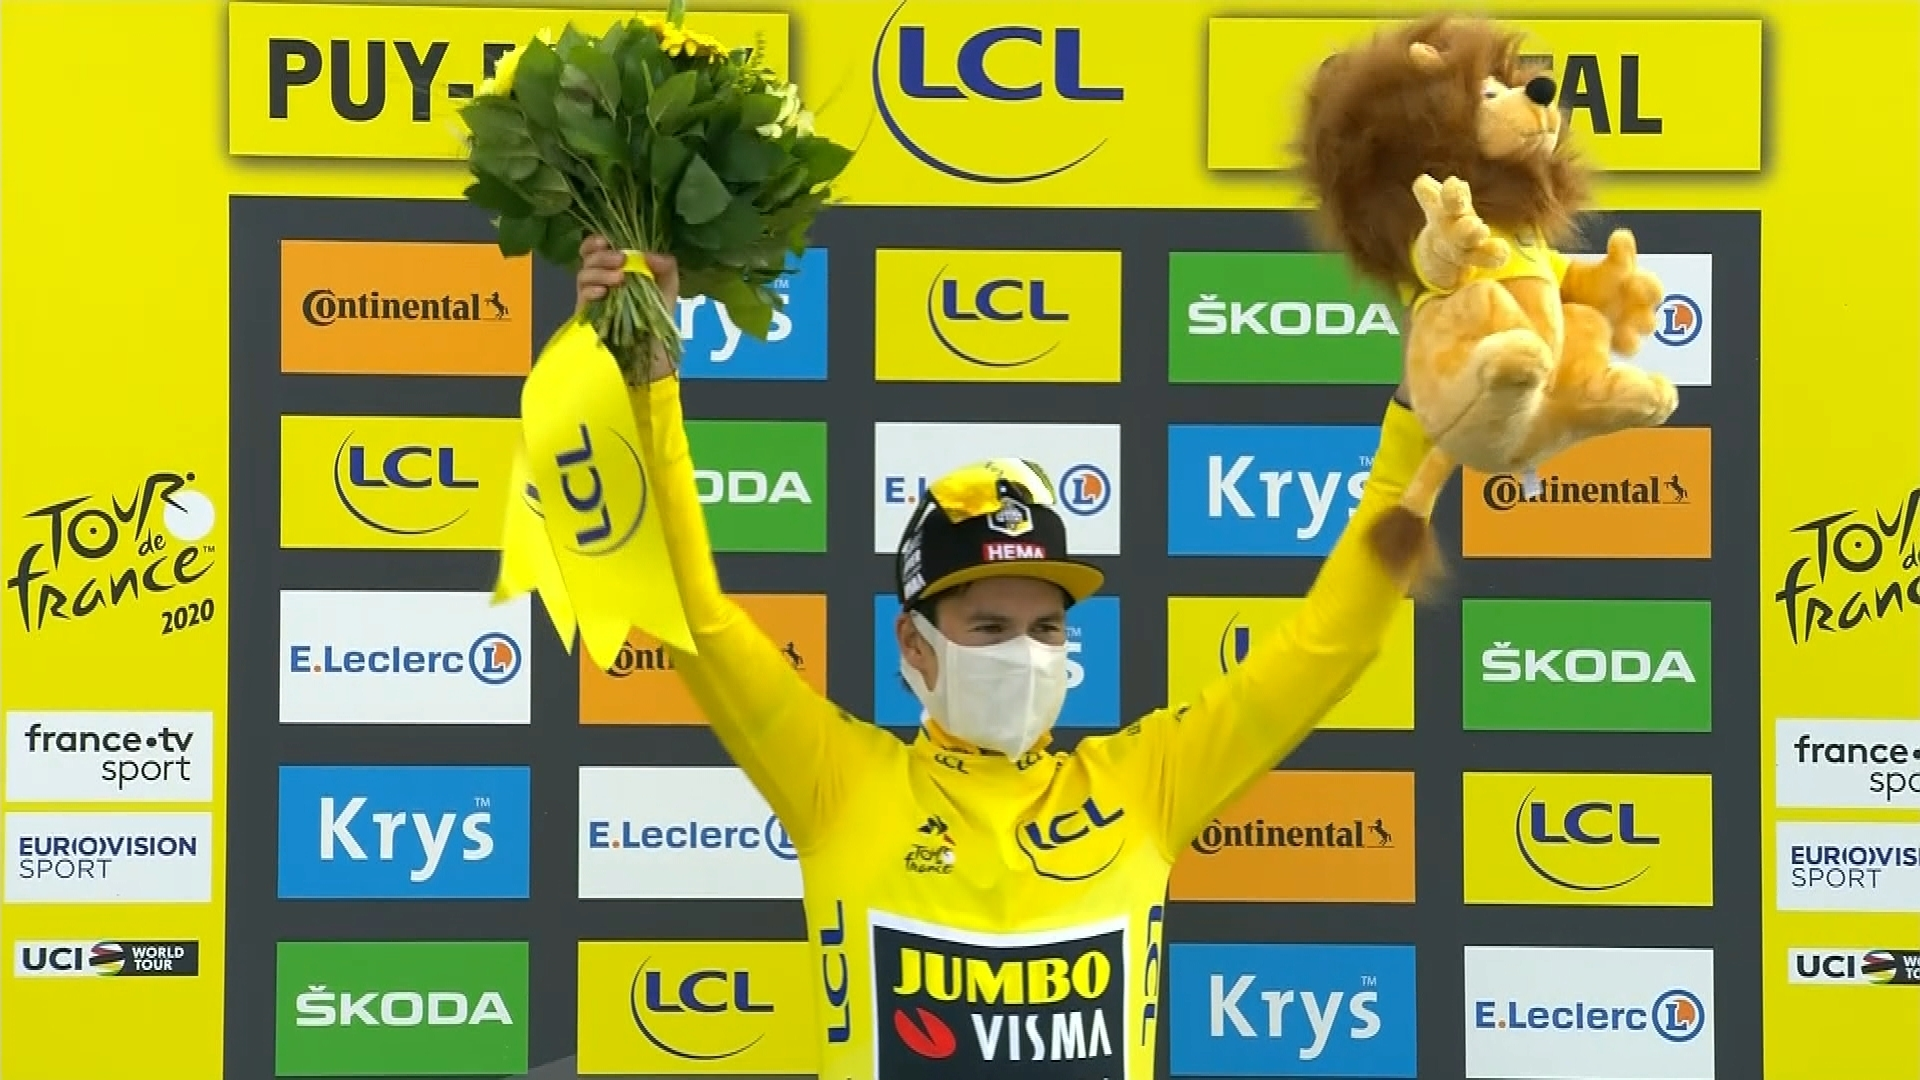 Tour De France 2020 Primoz Roglic Keeps Yellow Jersey After Stage 13 Nbc Sports